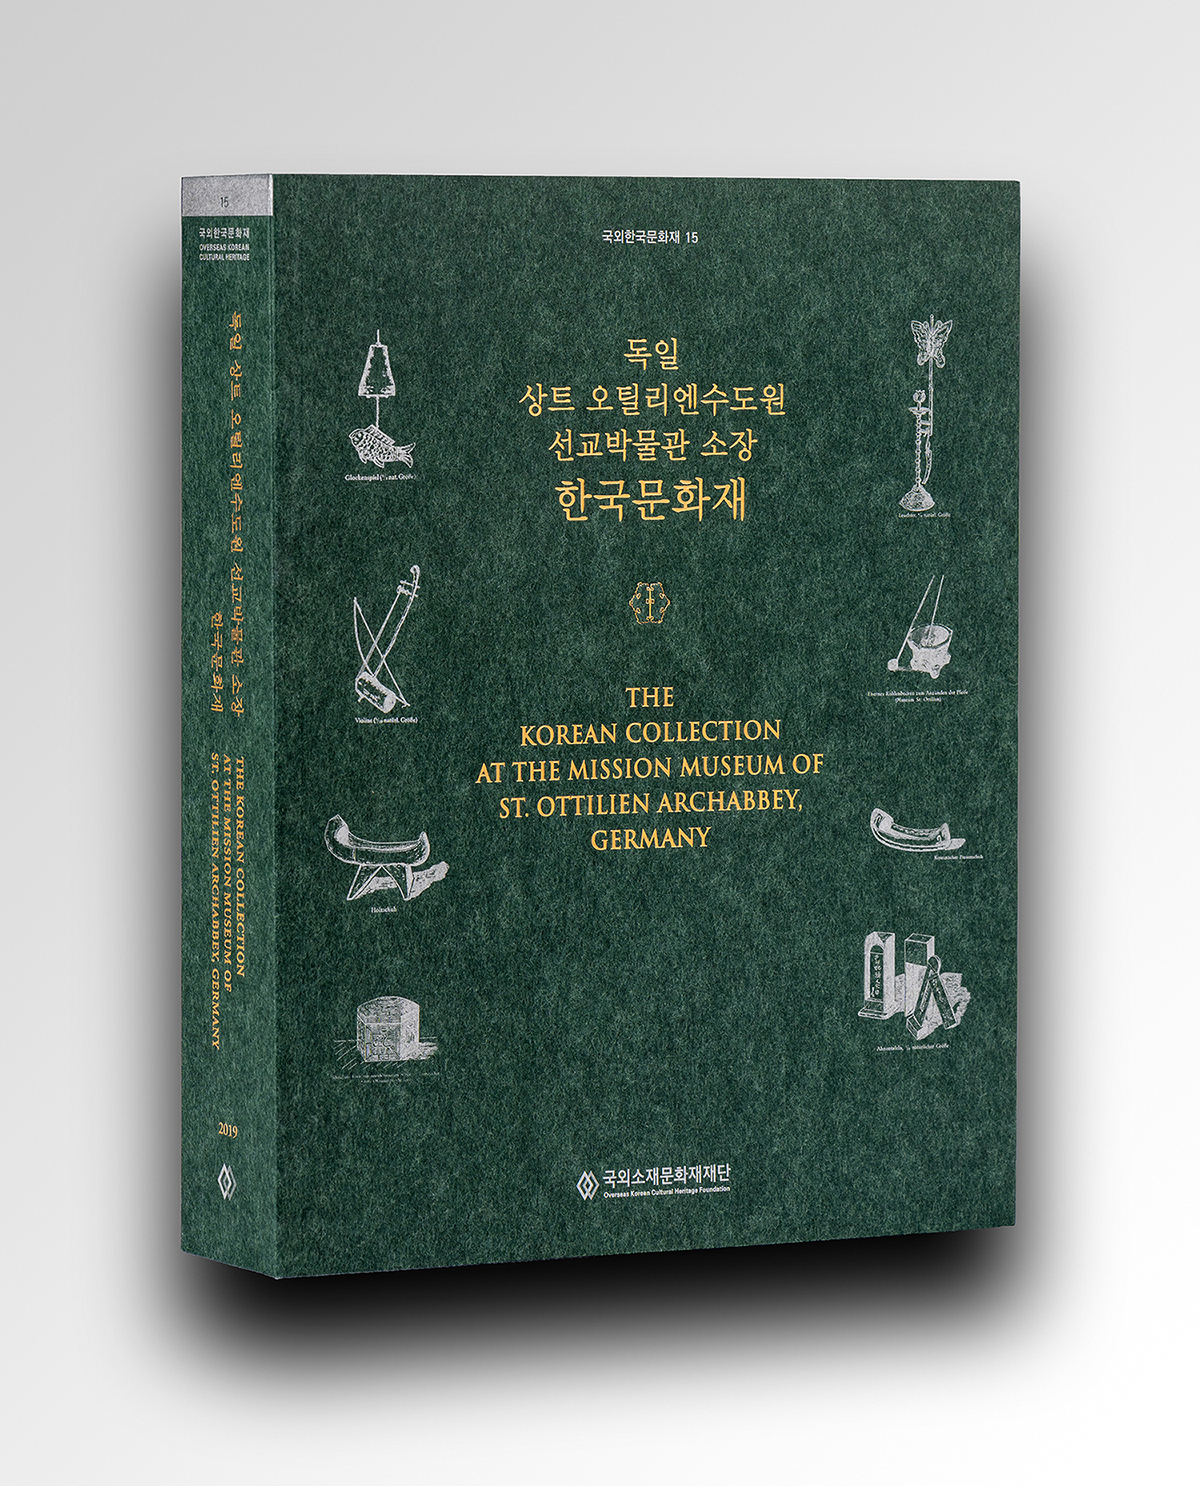 """A cover of report """"The Korean Collection at the Mission Museum of St. Ottilien Archabbey""""(Overseas Korean Cultural Heritage Foundation)"""